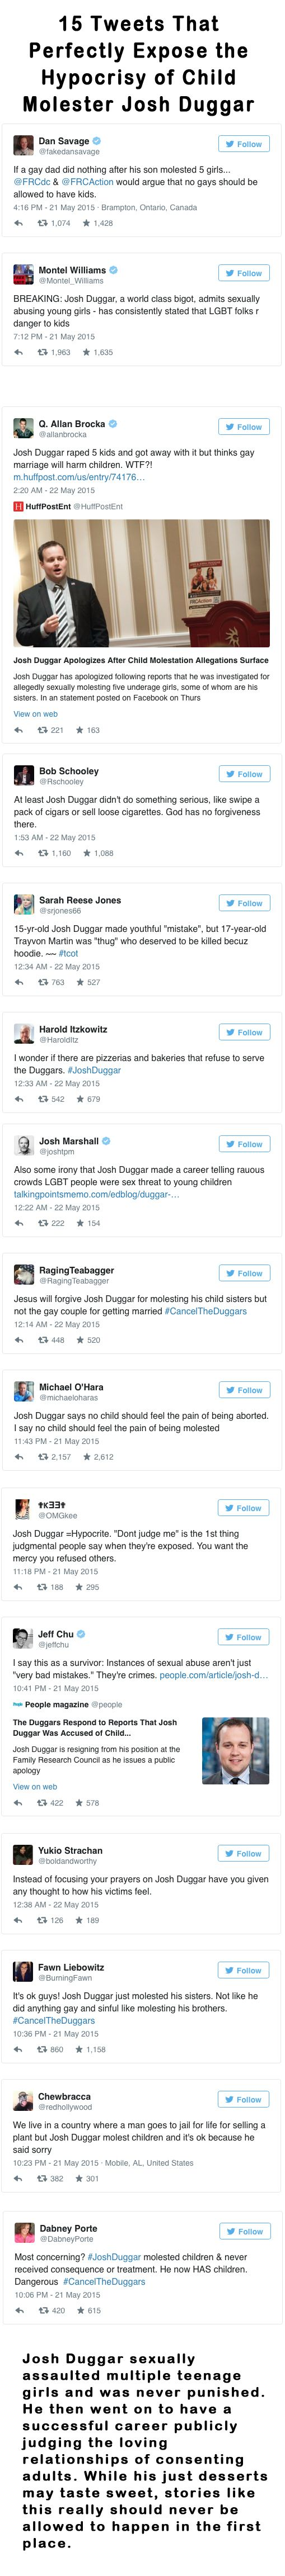 15 Tweets That Perfectly Expose the Hypocrisy of Child Molester Josh Duggar. Josh Duggar sexually assaulted multiple teenage girls and was never punished. He then went on to have a successful career publicly judging the loving relationships of consenting adults. While his just desserts may taste sweet, stories like this really should never be allowed to happen in the first place.